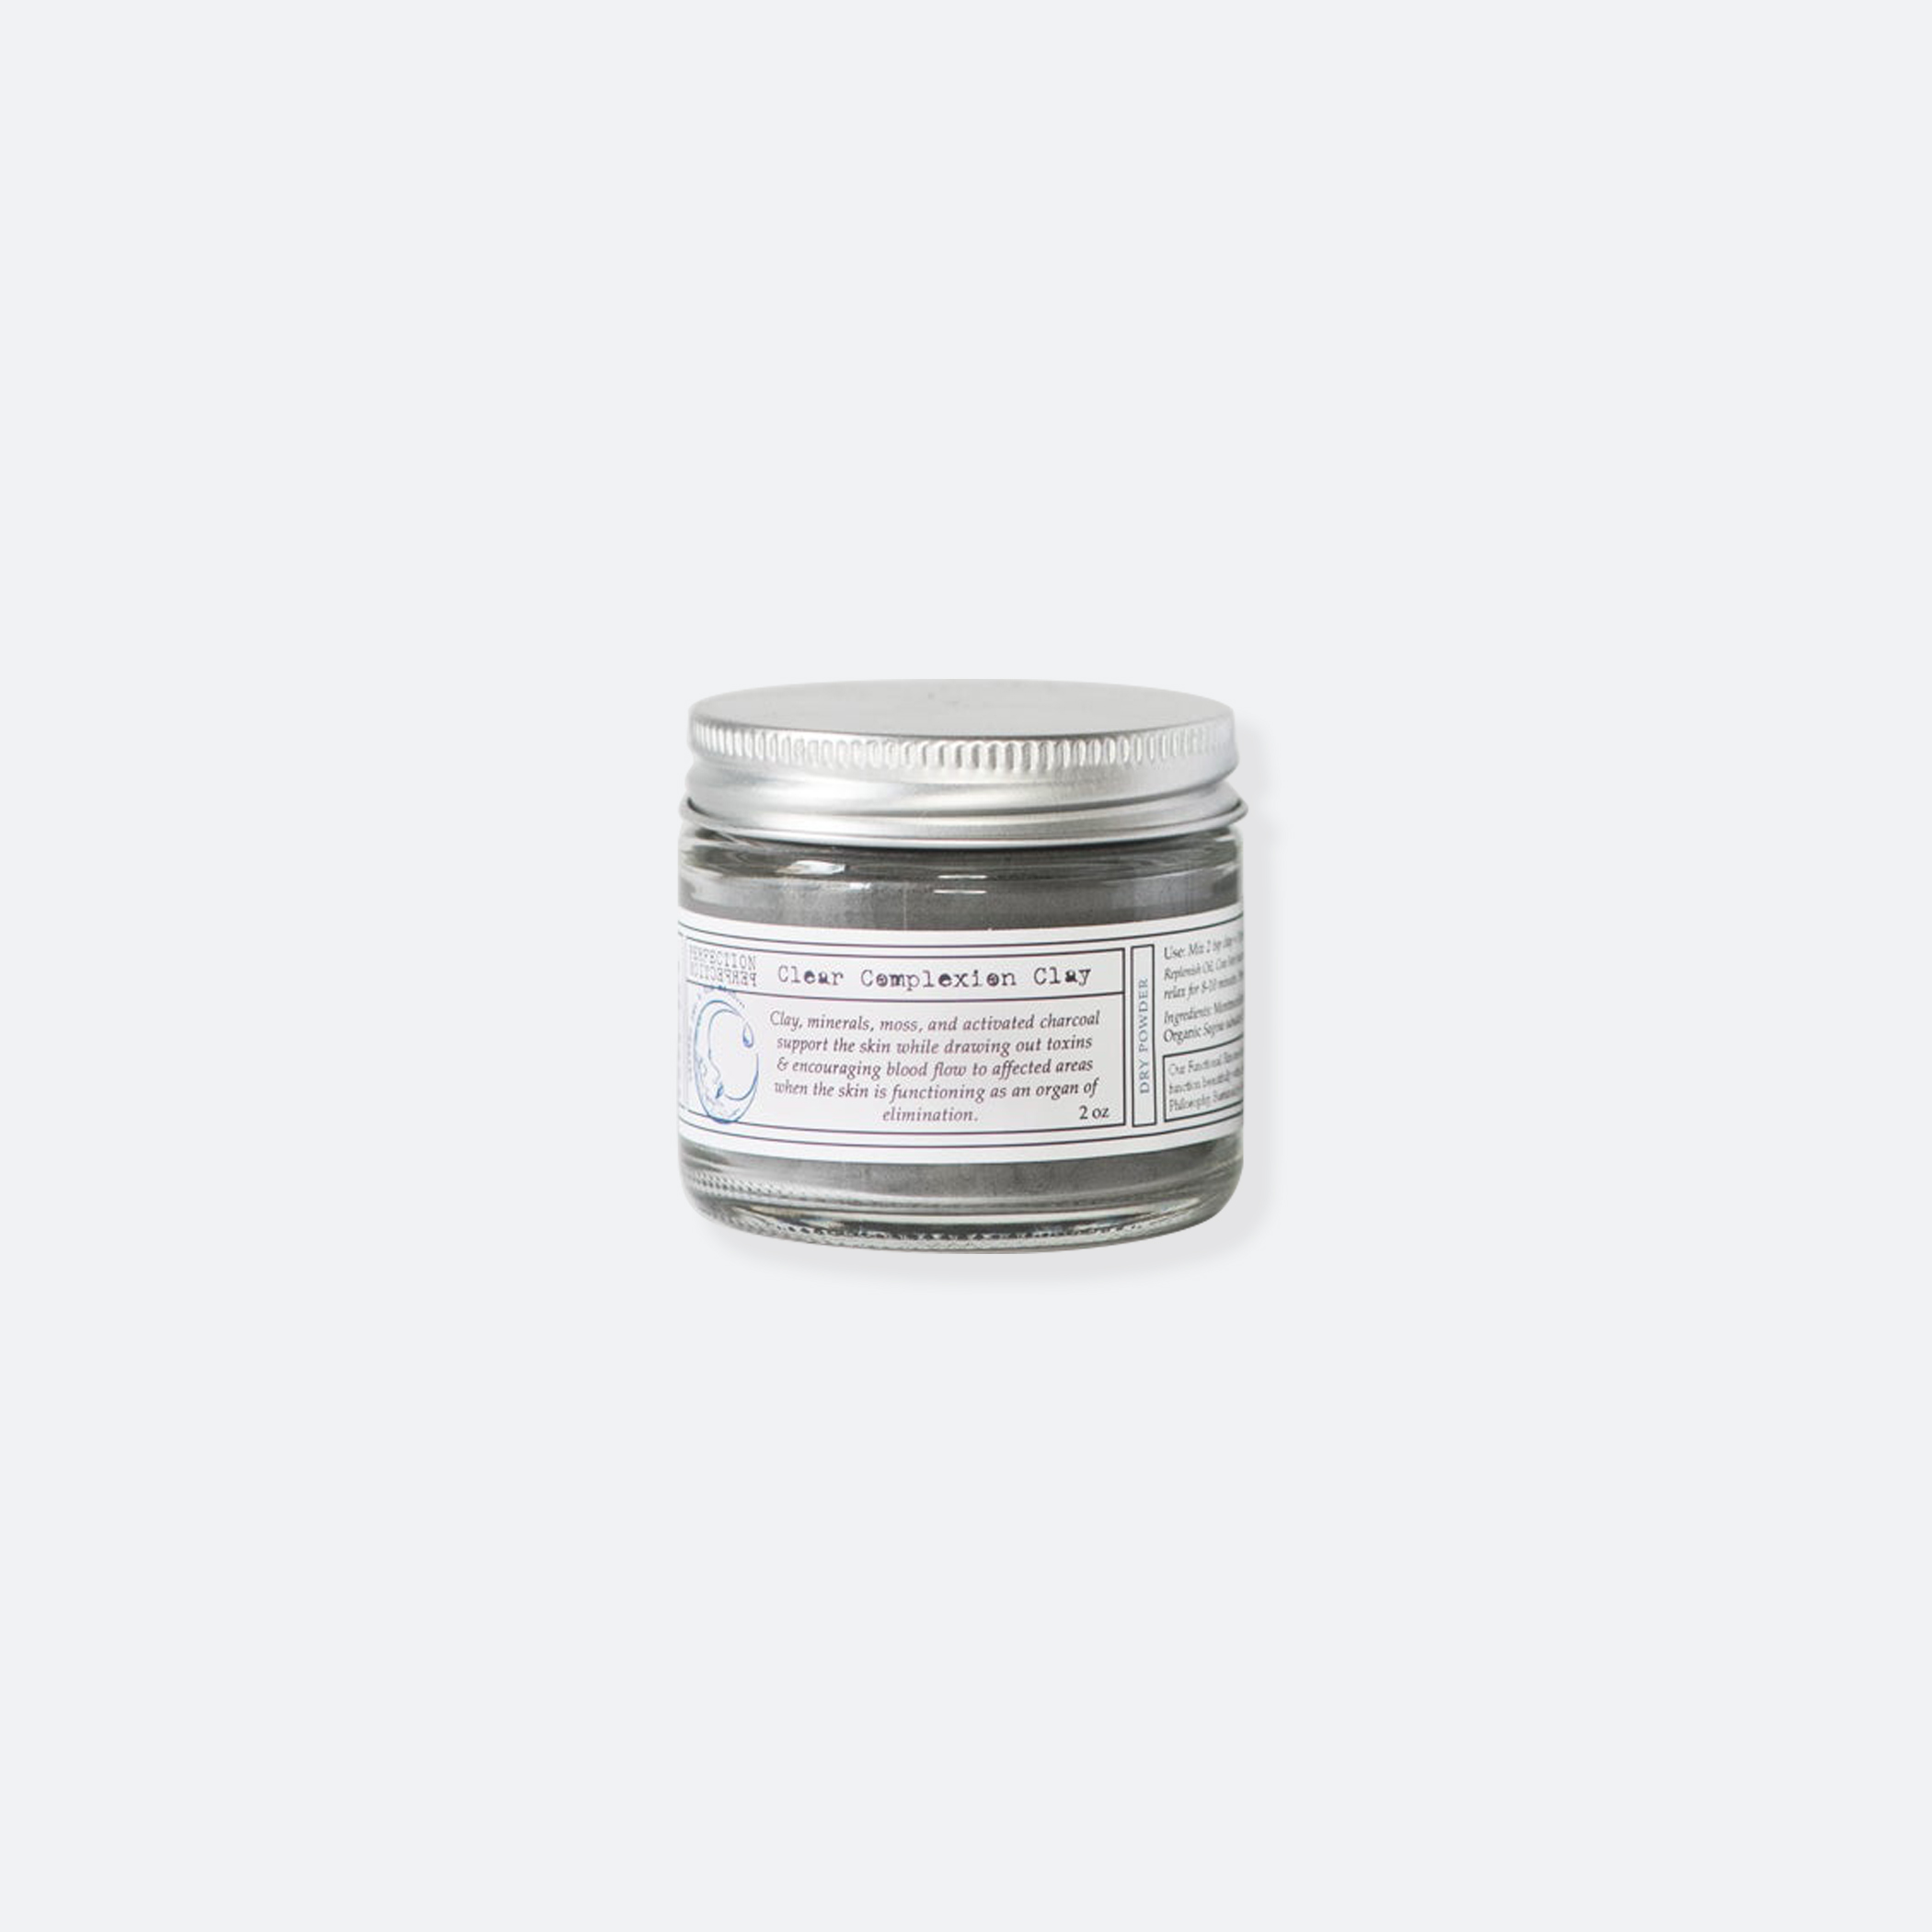 OhMart Between You & the Moon – Clear Complexion Clay Mask 60ml 1